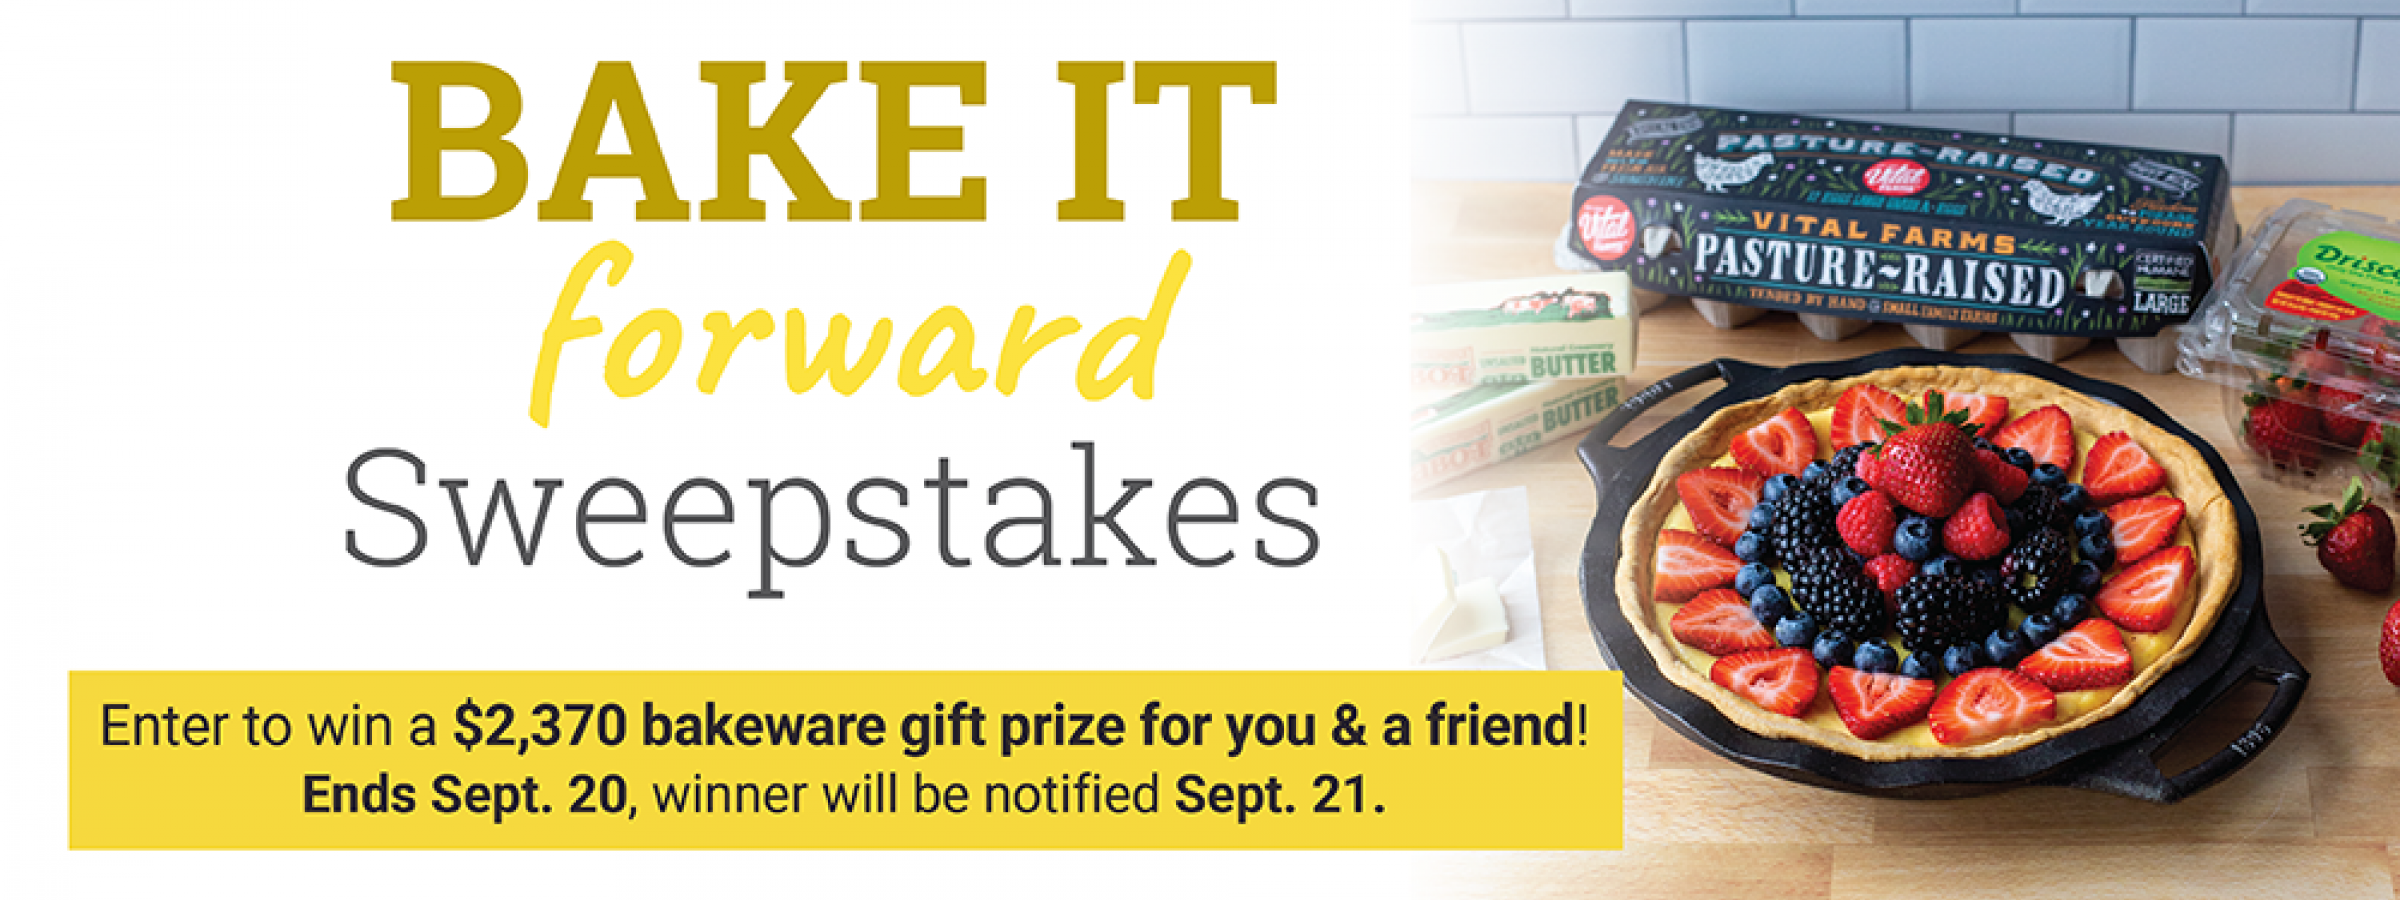 Lodge Cast Iron has teamed up with friends at Driscoll's, Vital Farms, and Cabot Creamery to bring you a delicious baking sweepstakes. Enter to win a baking prize package—including bakeware, berries, and cheese— for both you and a friend!